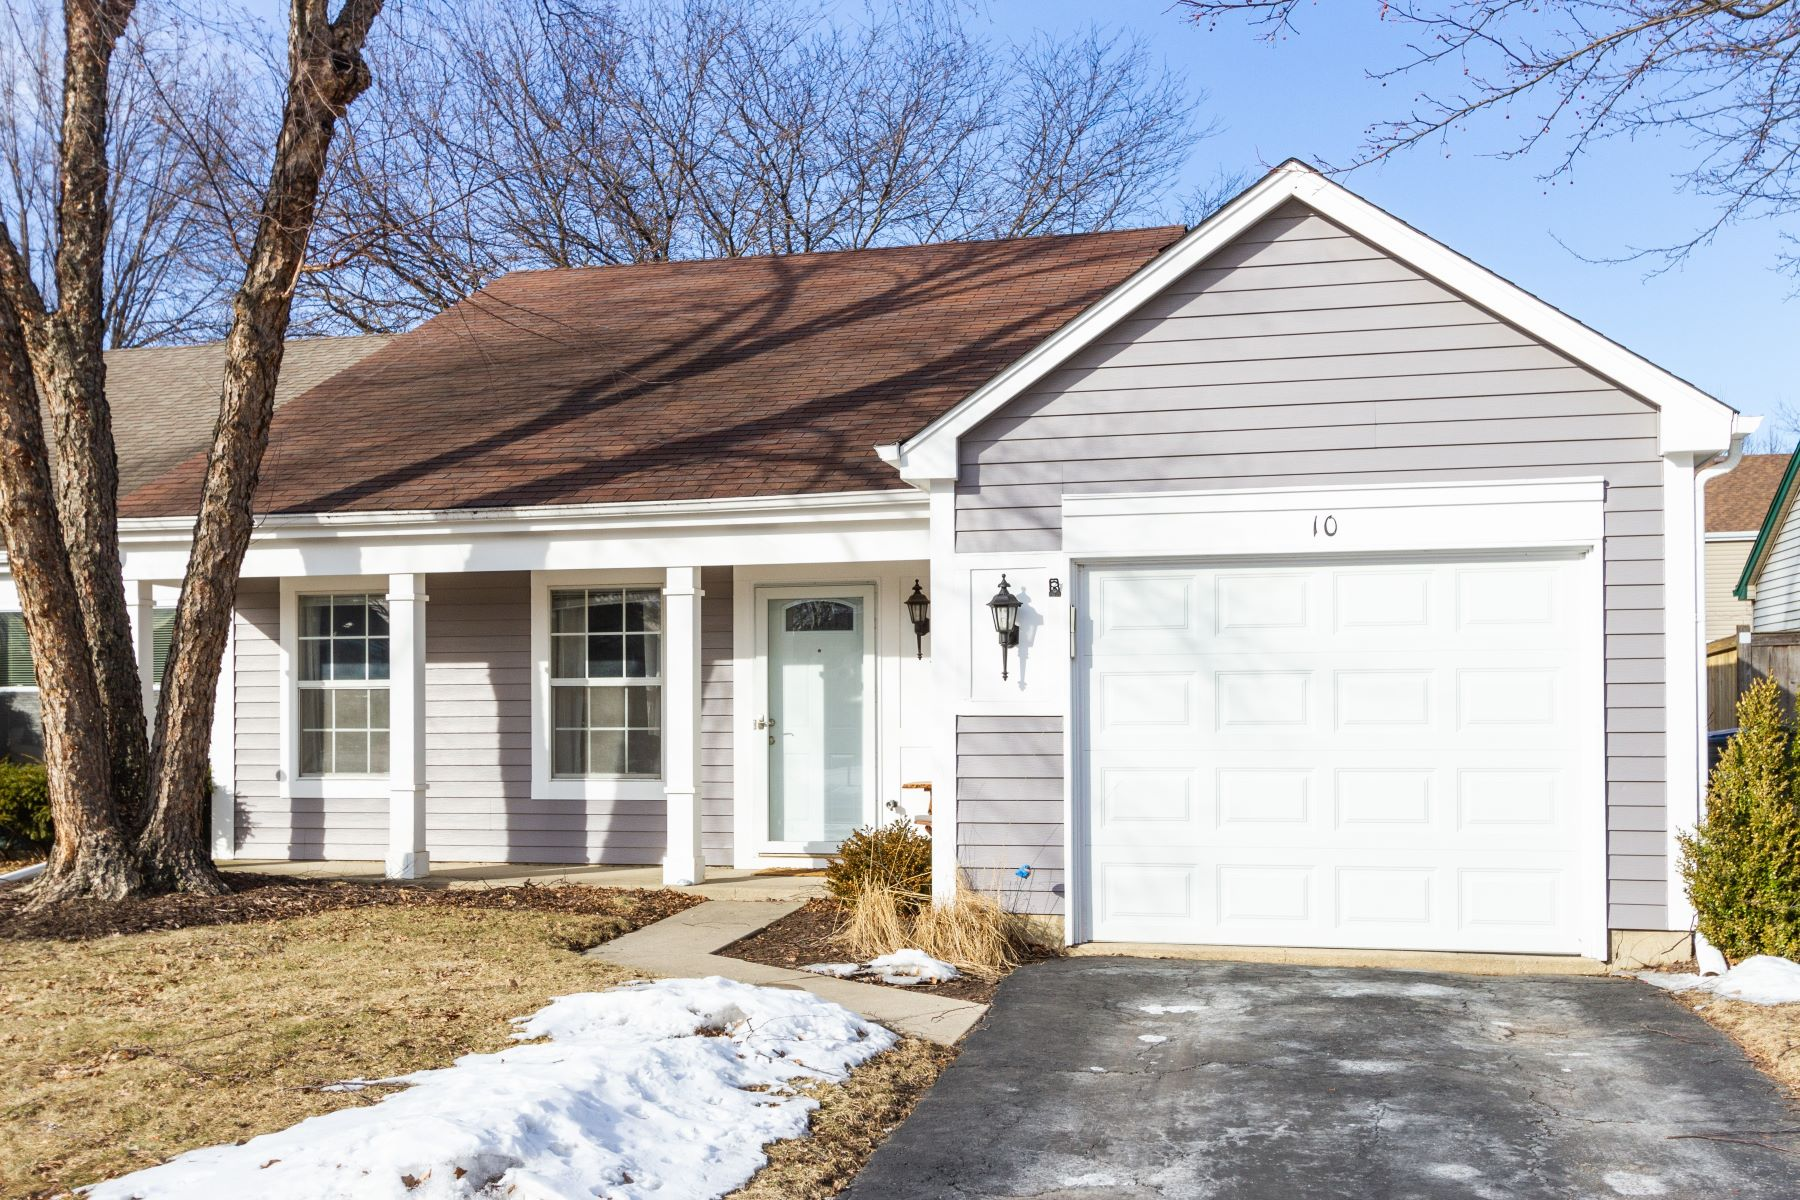 Duplex for Sale at Mint Condition 10 Bedford Road Mundelein, Illinois 60060 United States